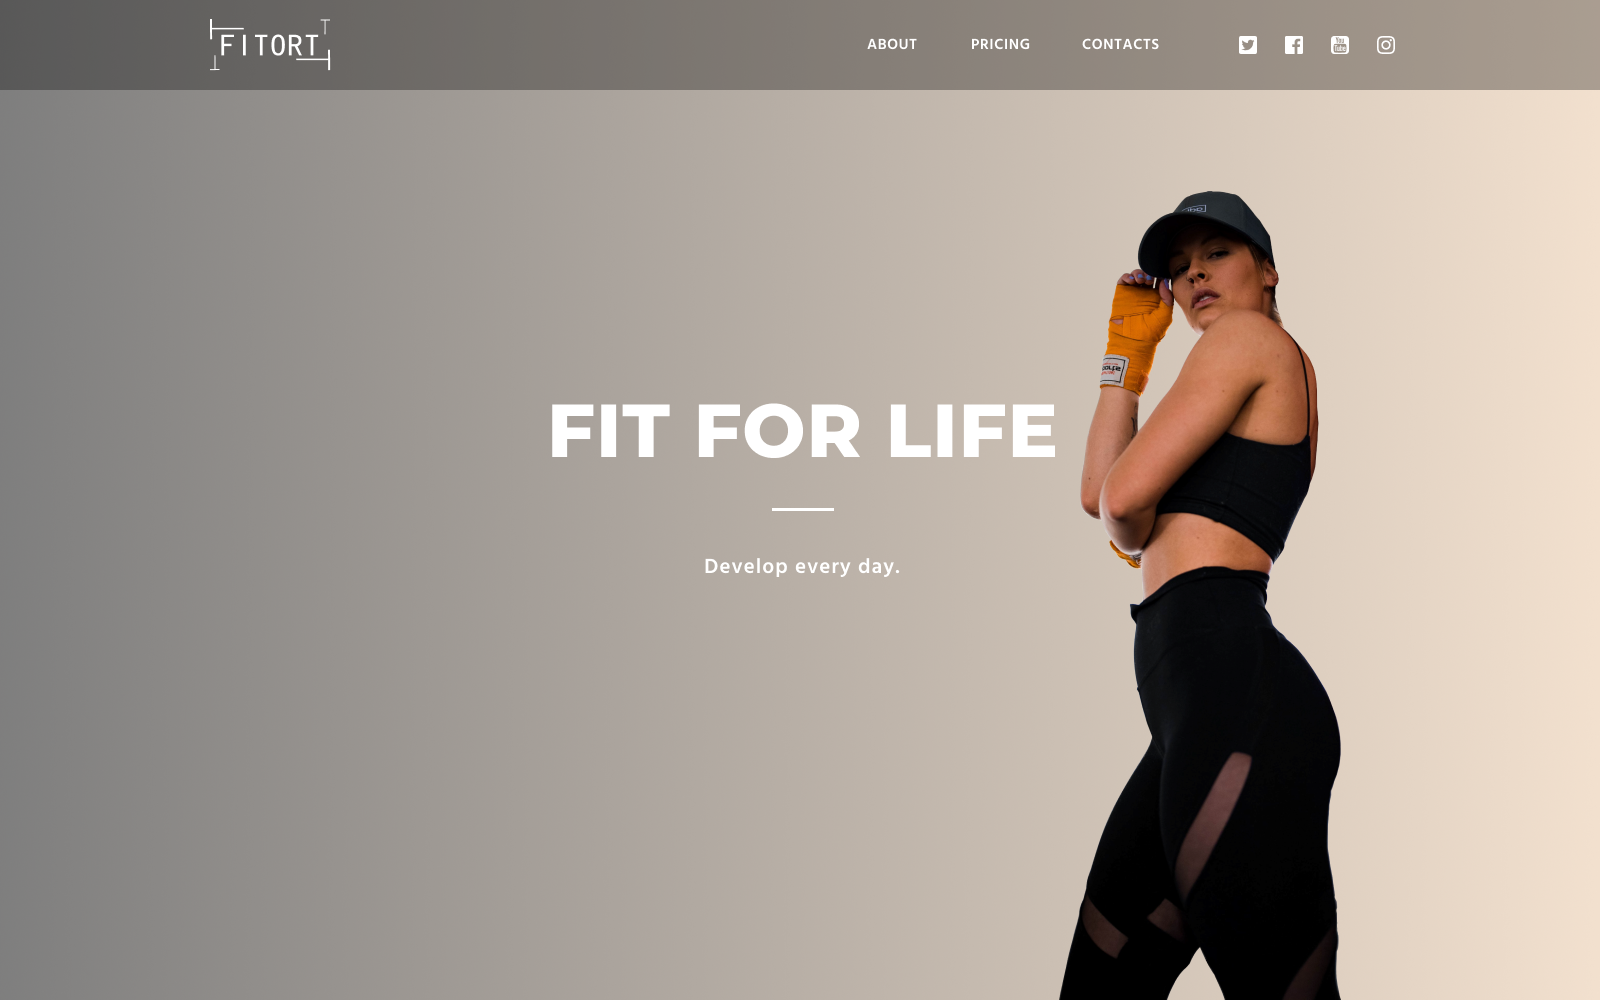 Fitort - Sporting Html Landing Page Template.